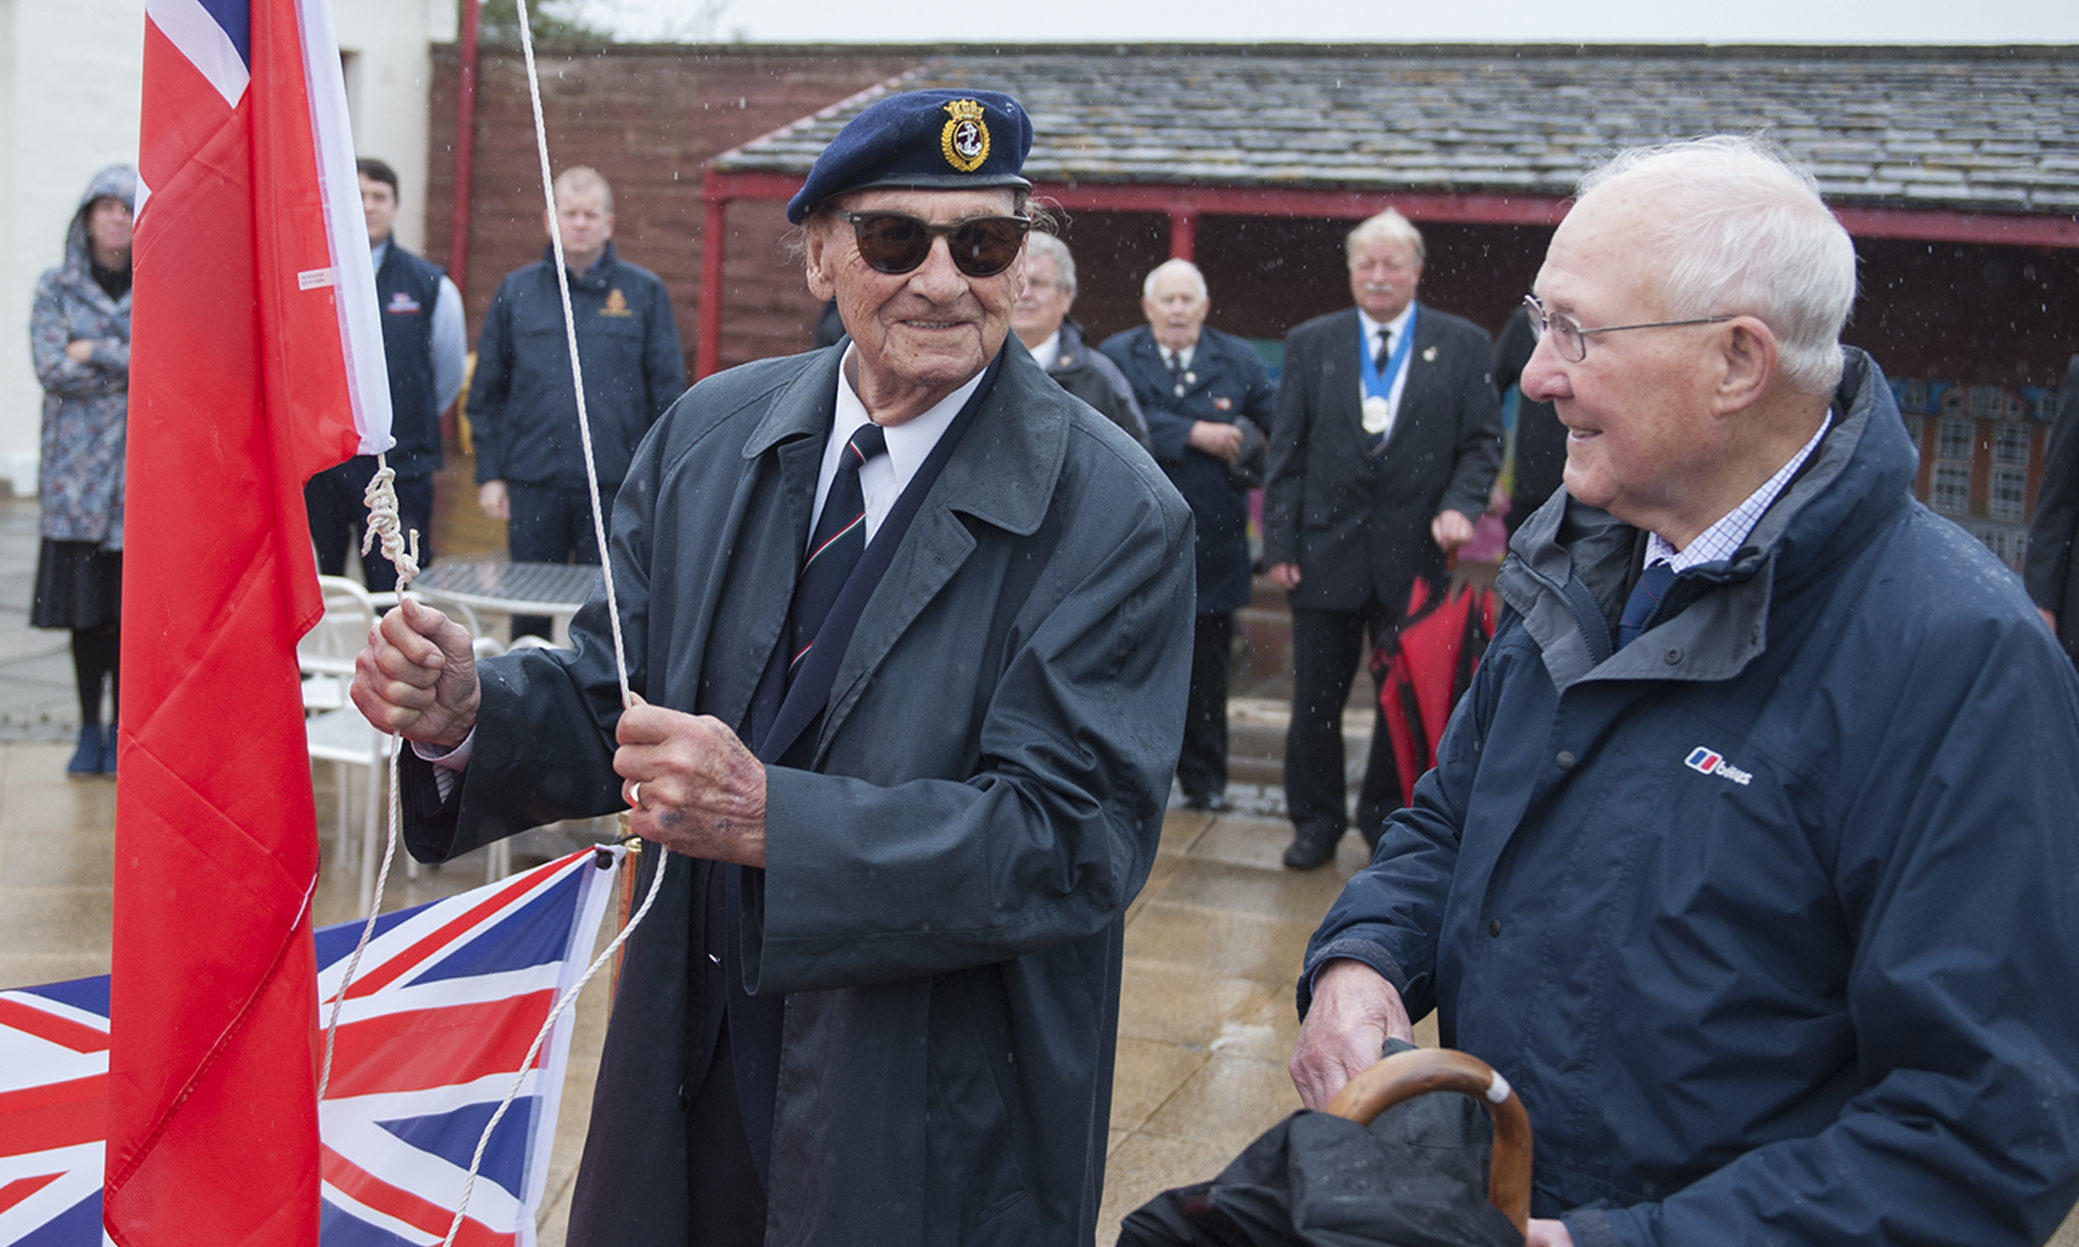 Retired Merchant Navy Captain Sandy Davidson raising the Red Ensign flag.